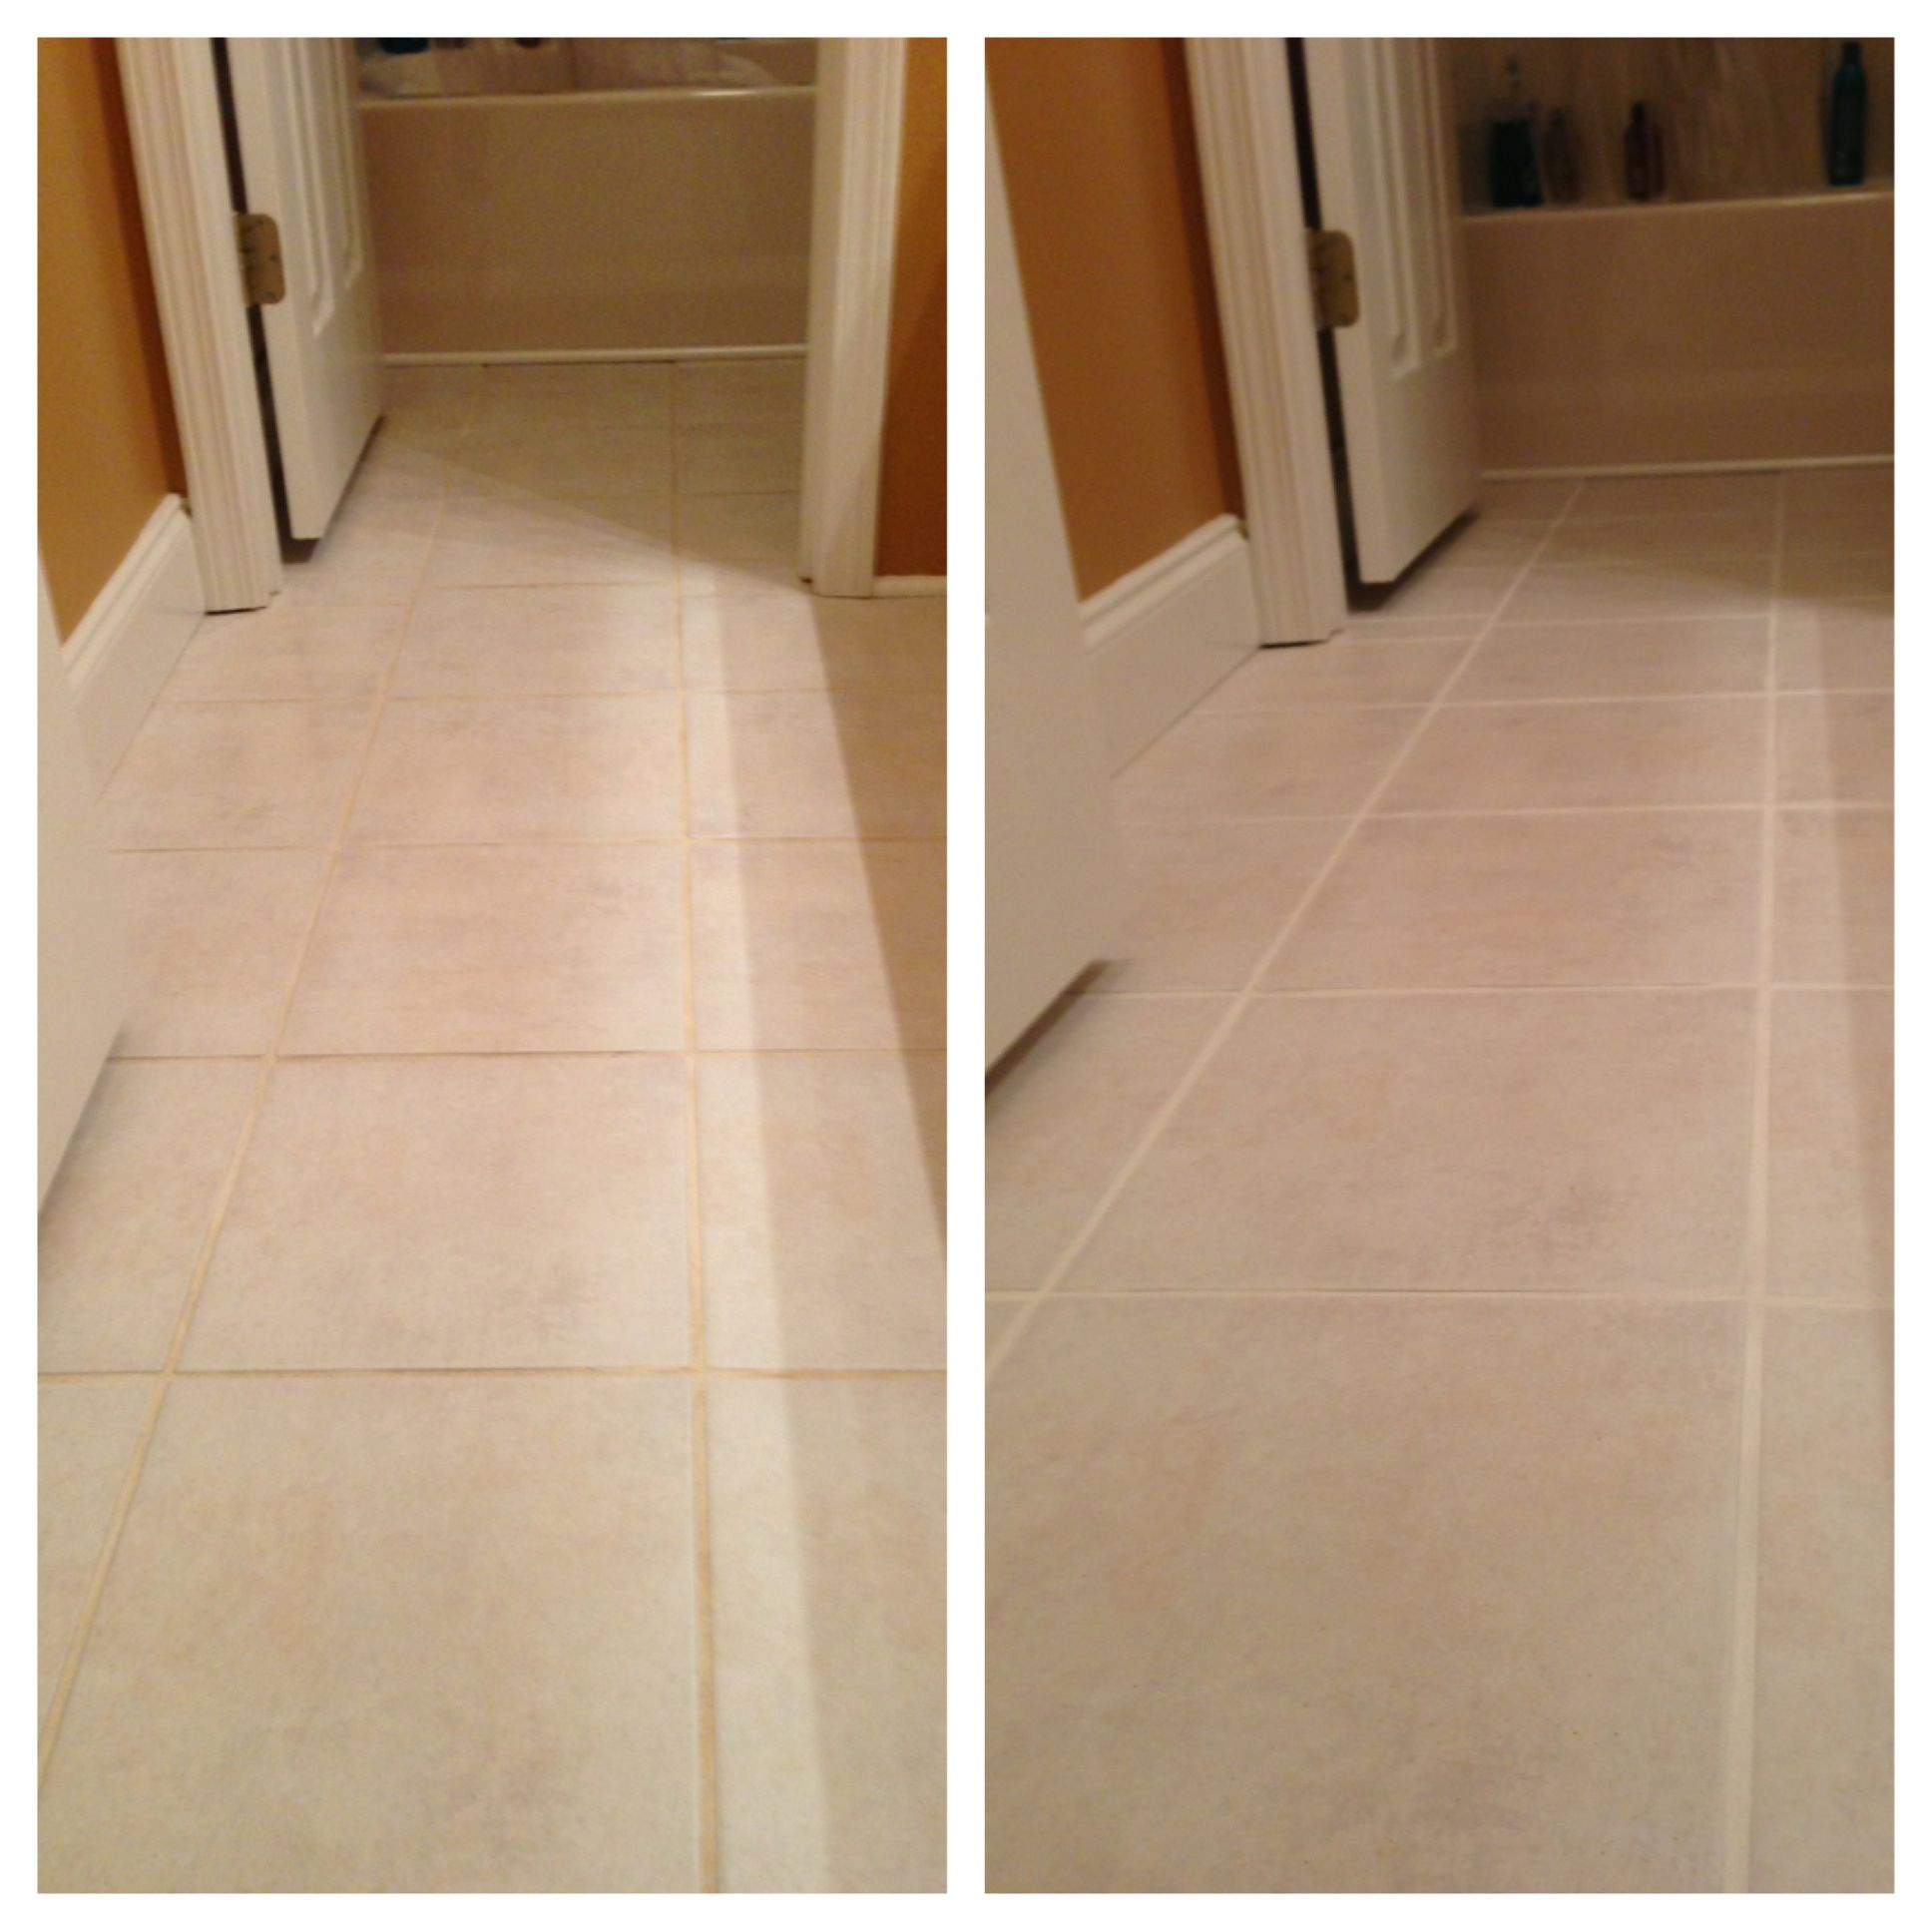 Before After Grout Renew In Snow White Totally Made A Huge Difference It S So Clean Looking Pretty Now I Ve Tried Ev New Homes Grout Renew Cleaning Hacks